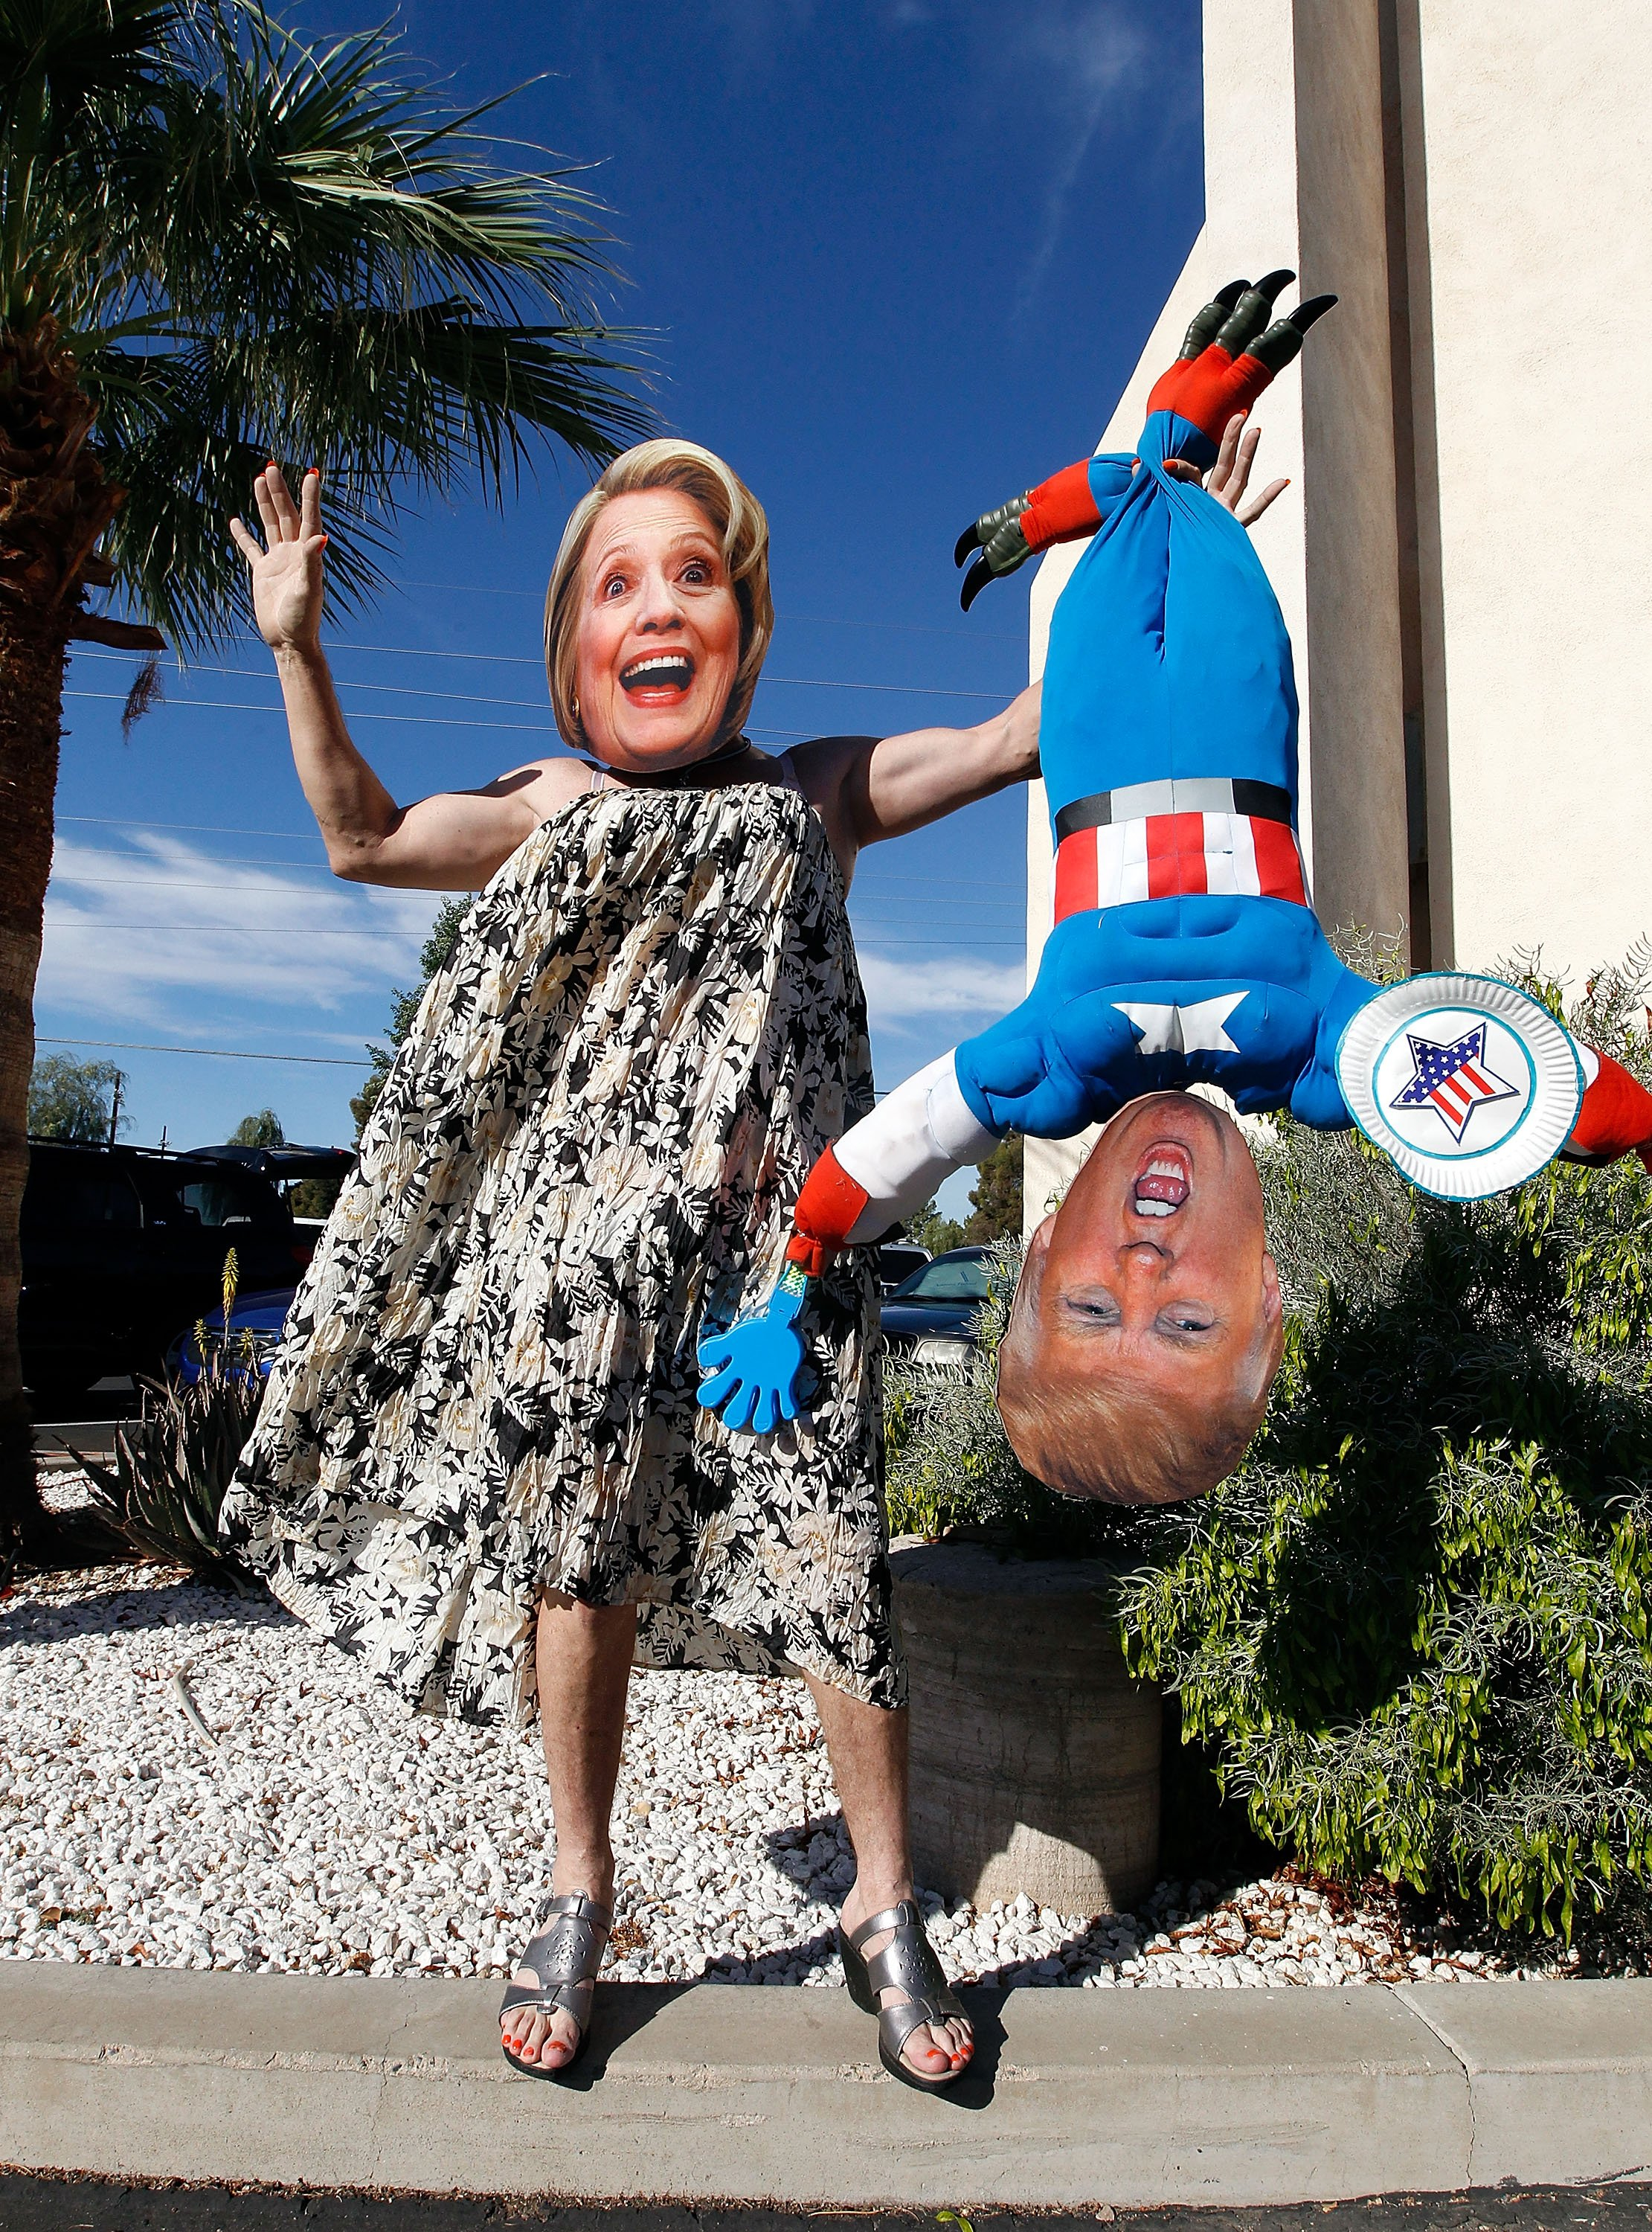 Hillary Clinton supporter Jorge Mendez of Glendale, Arizona wears a dress and Hillary Clinton mask while holding a makeshift doll of Donald Trump after voting in Phoenix.